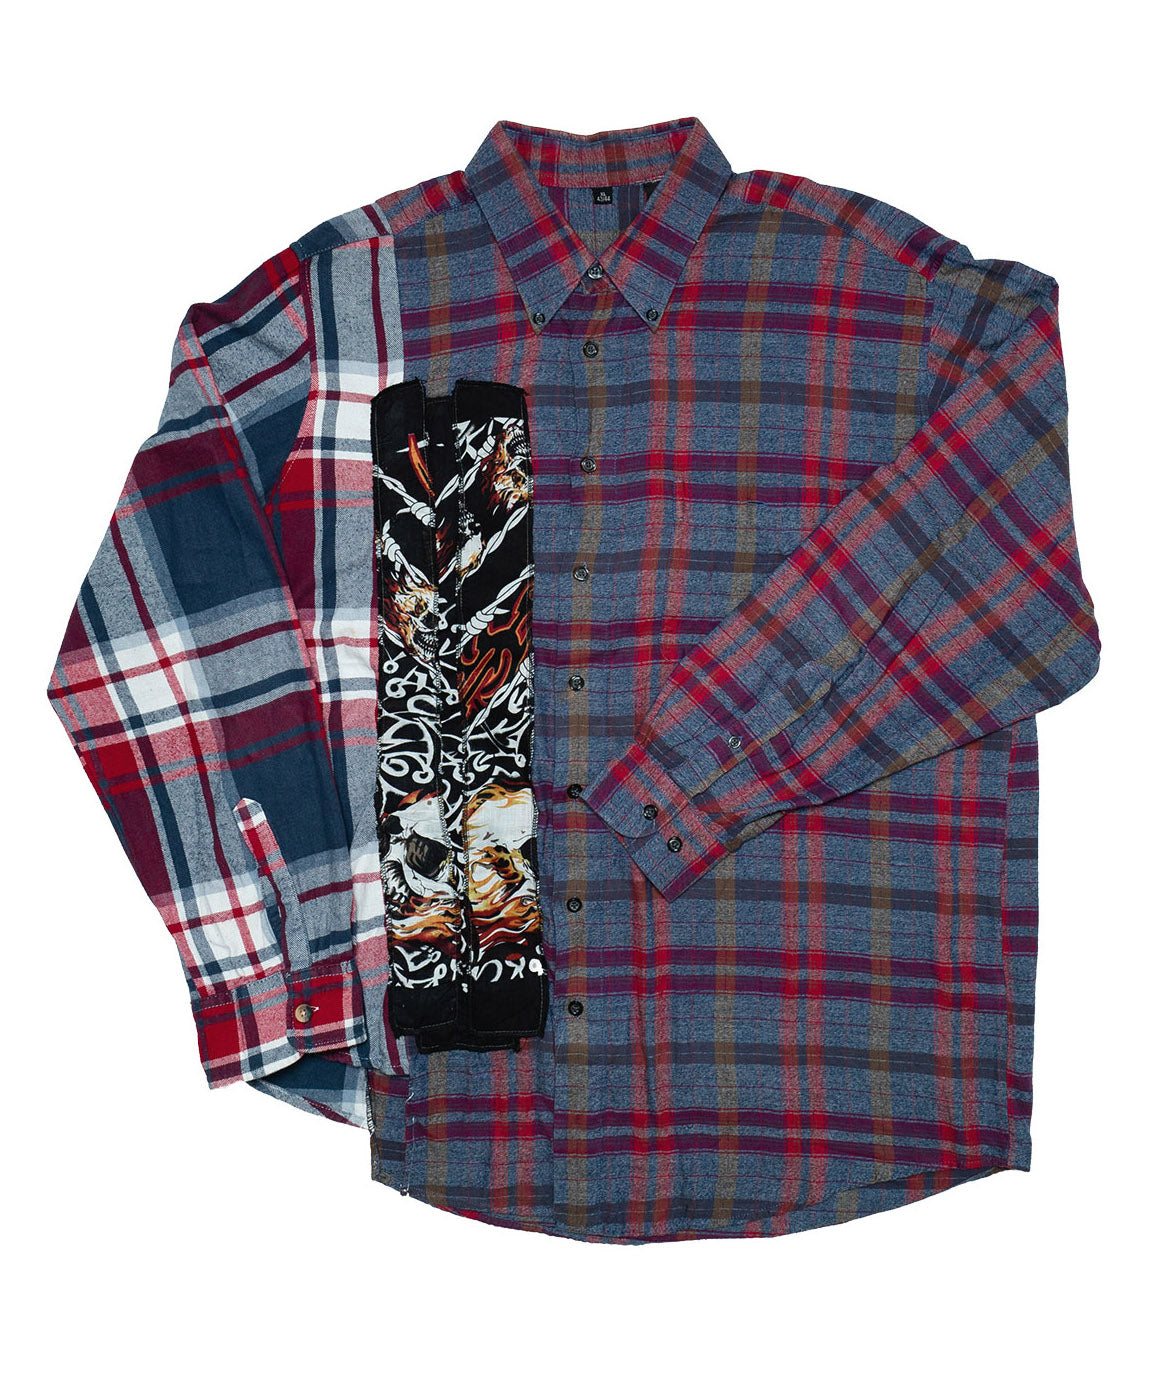 Shirt - Mick - XL oversize